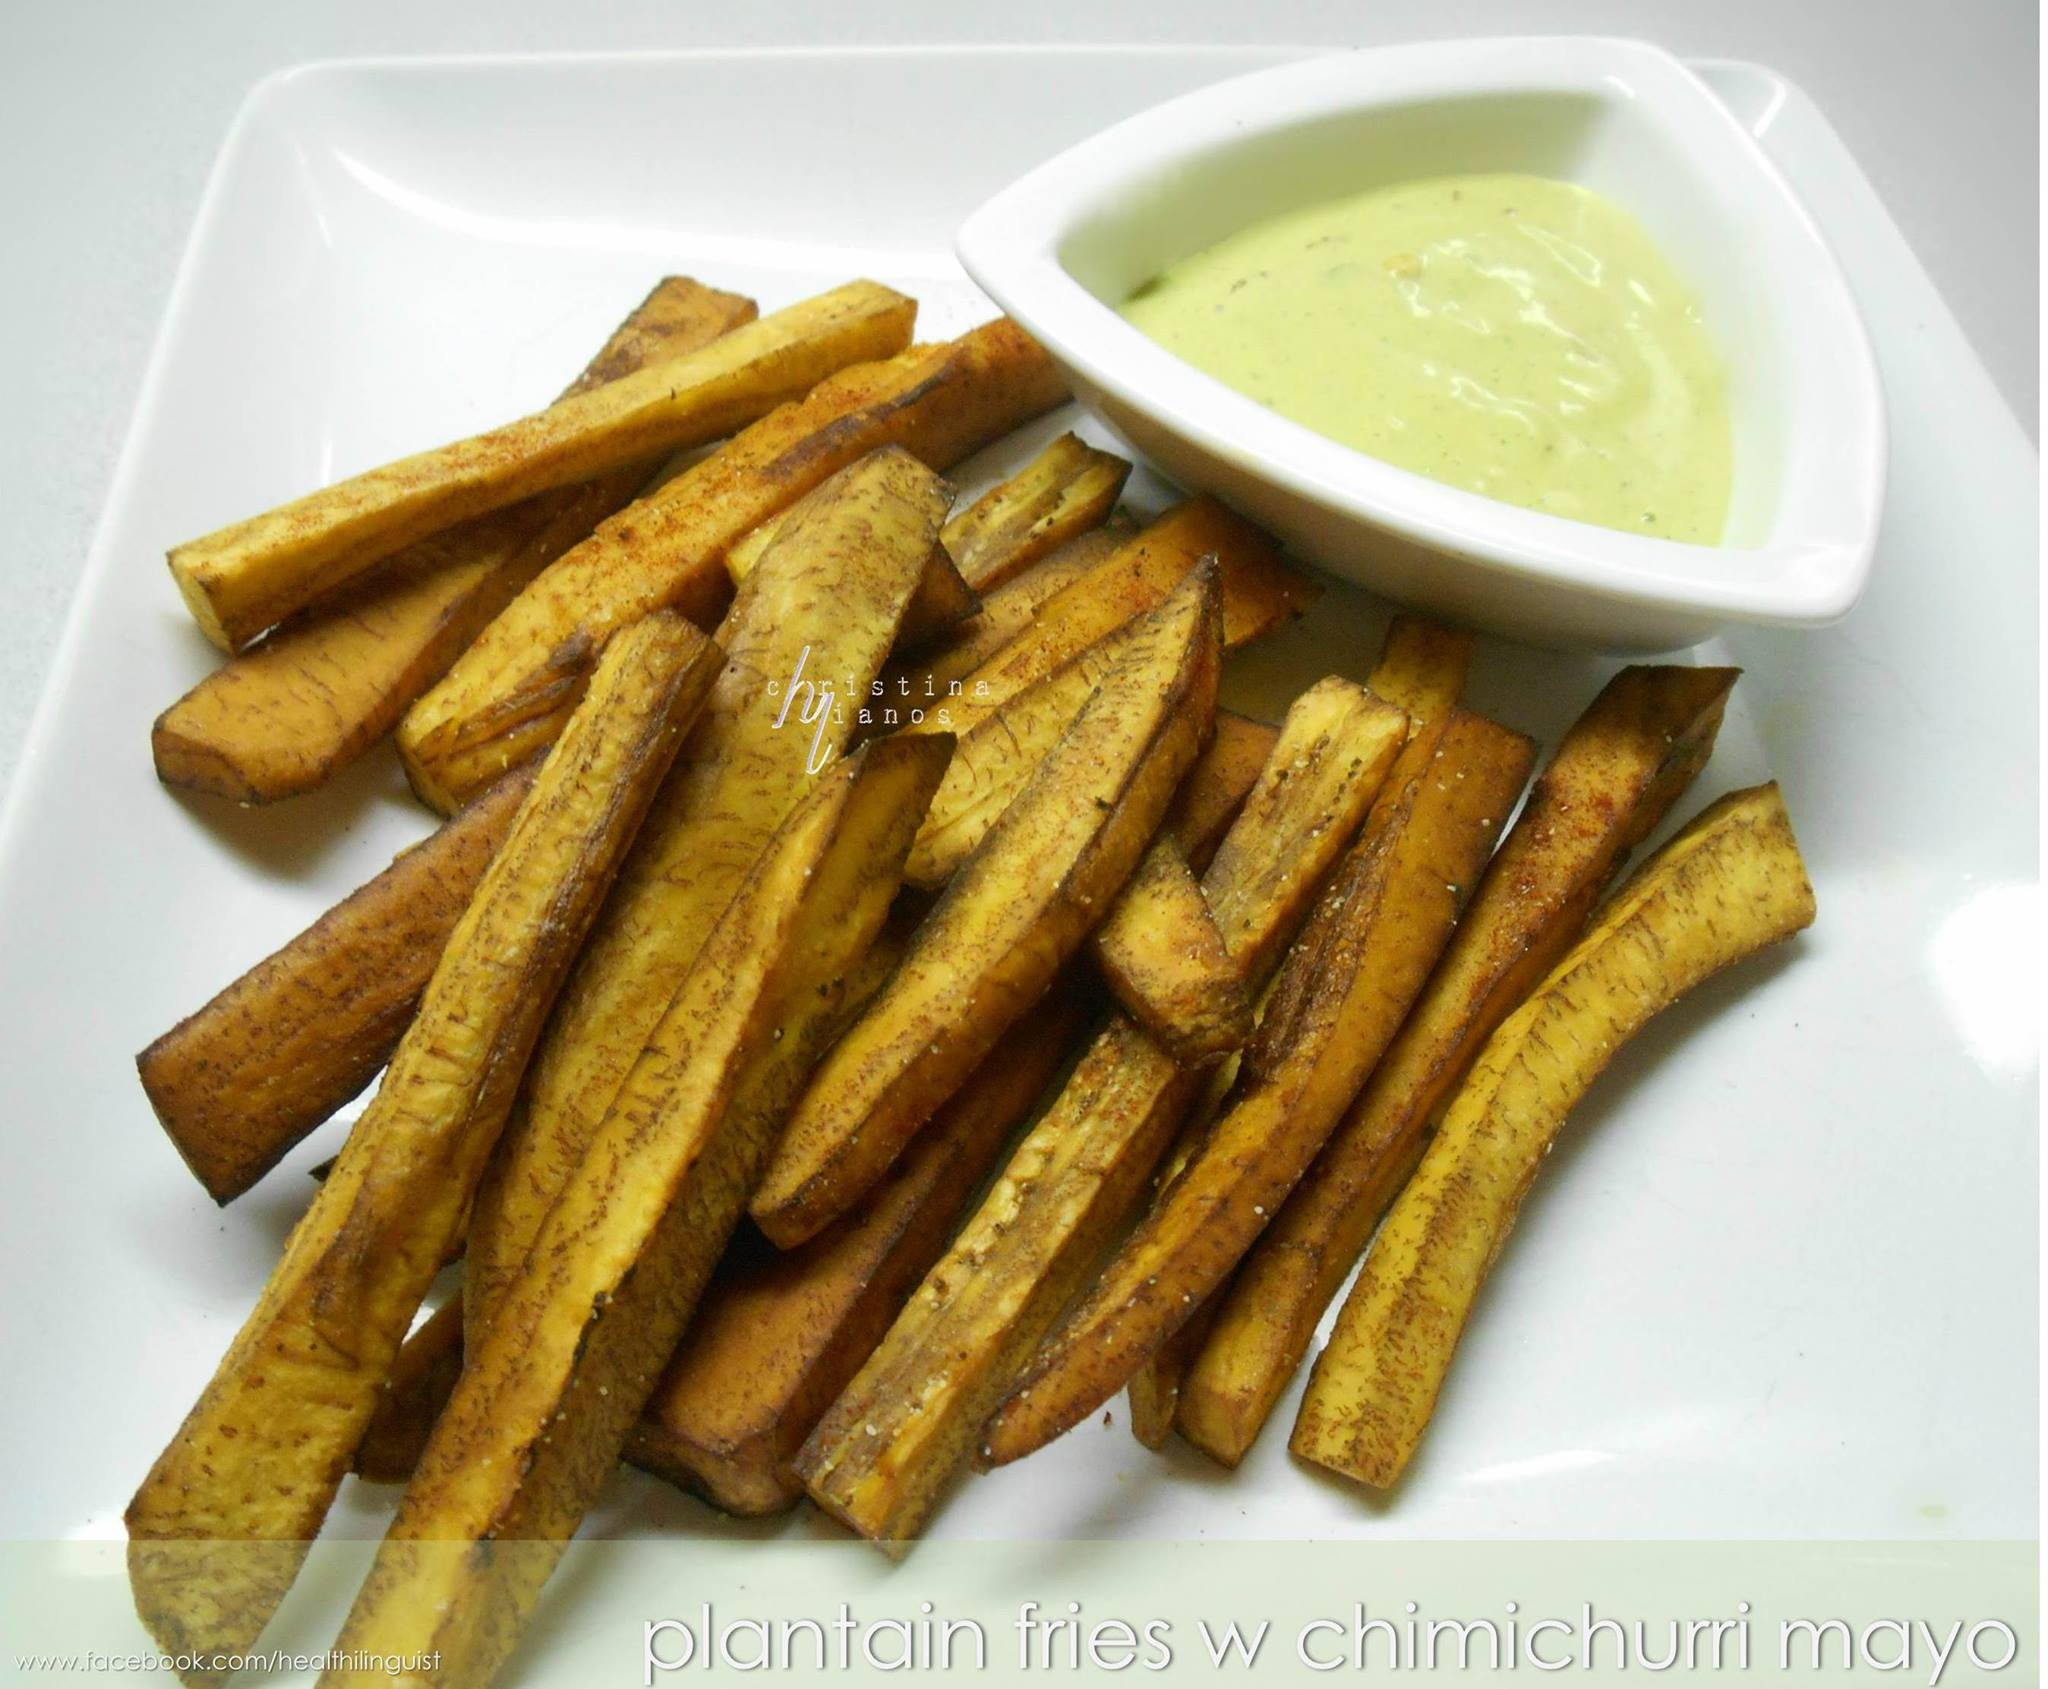 Plantain Fries and Chimichurri Mayo